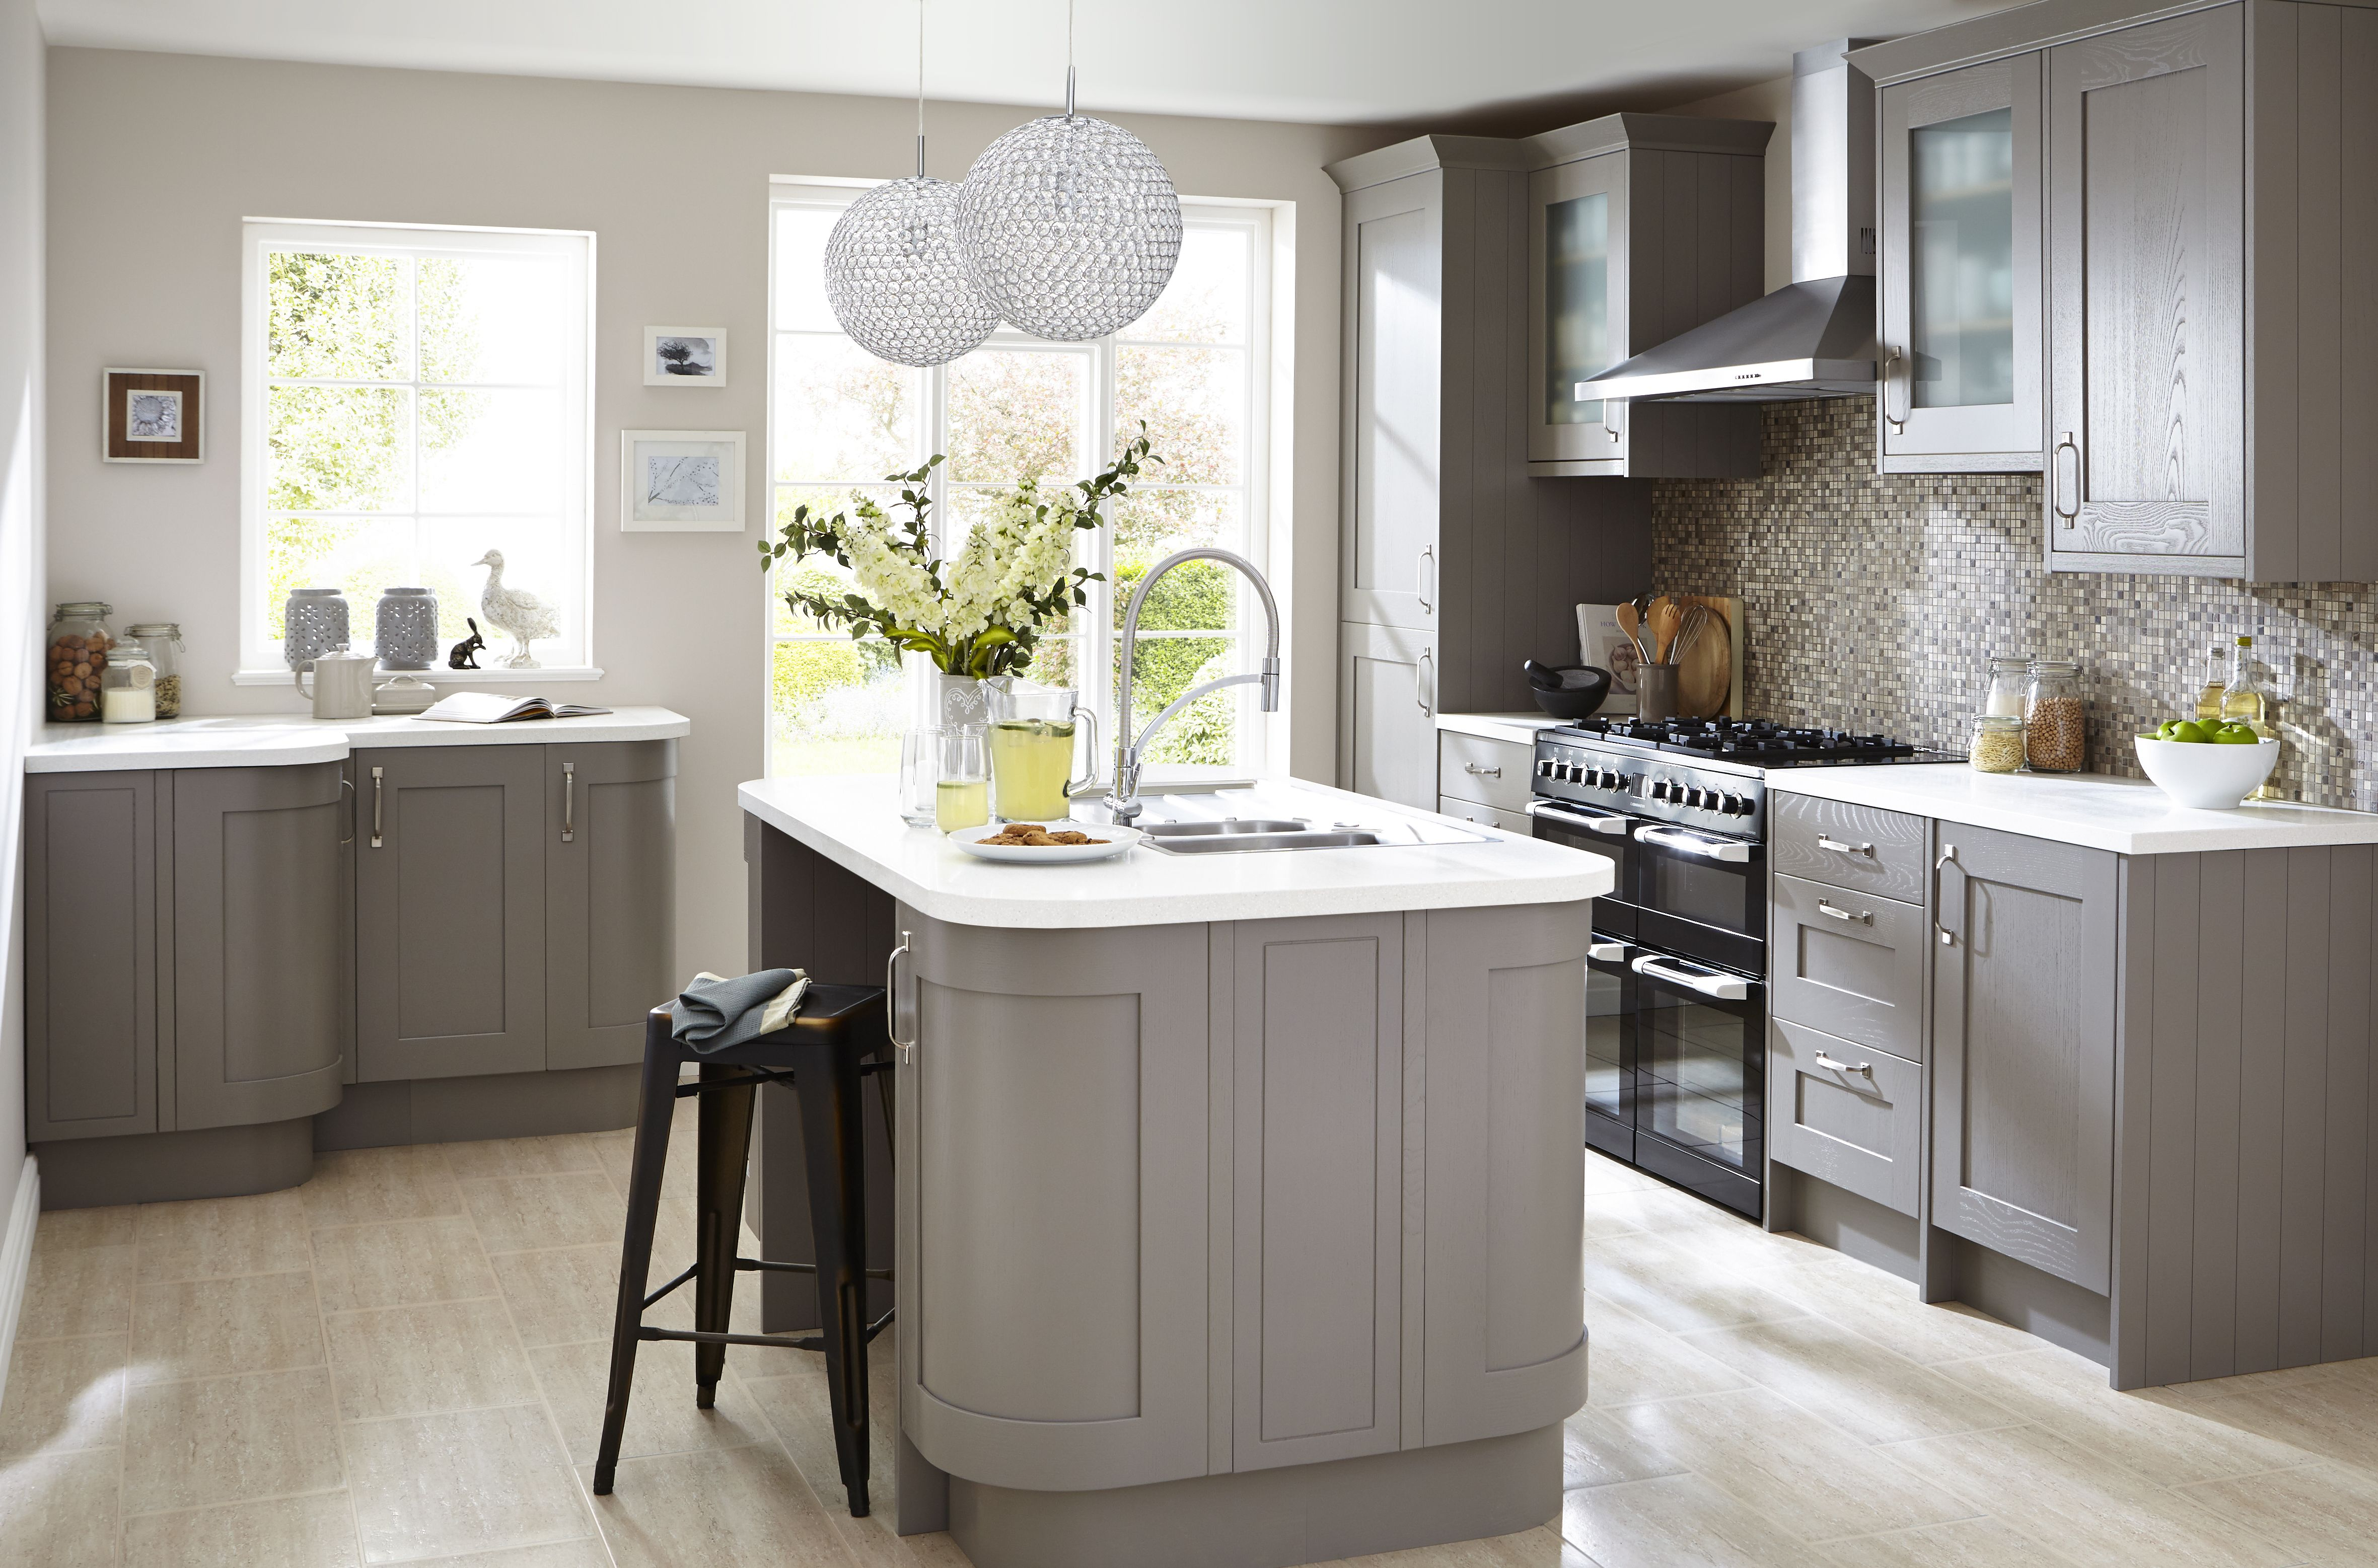 Clearance kitchen cabinets or units - Cooke Amp Lewis Carisbrooke Taupe Diy At B Amp Q